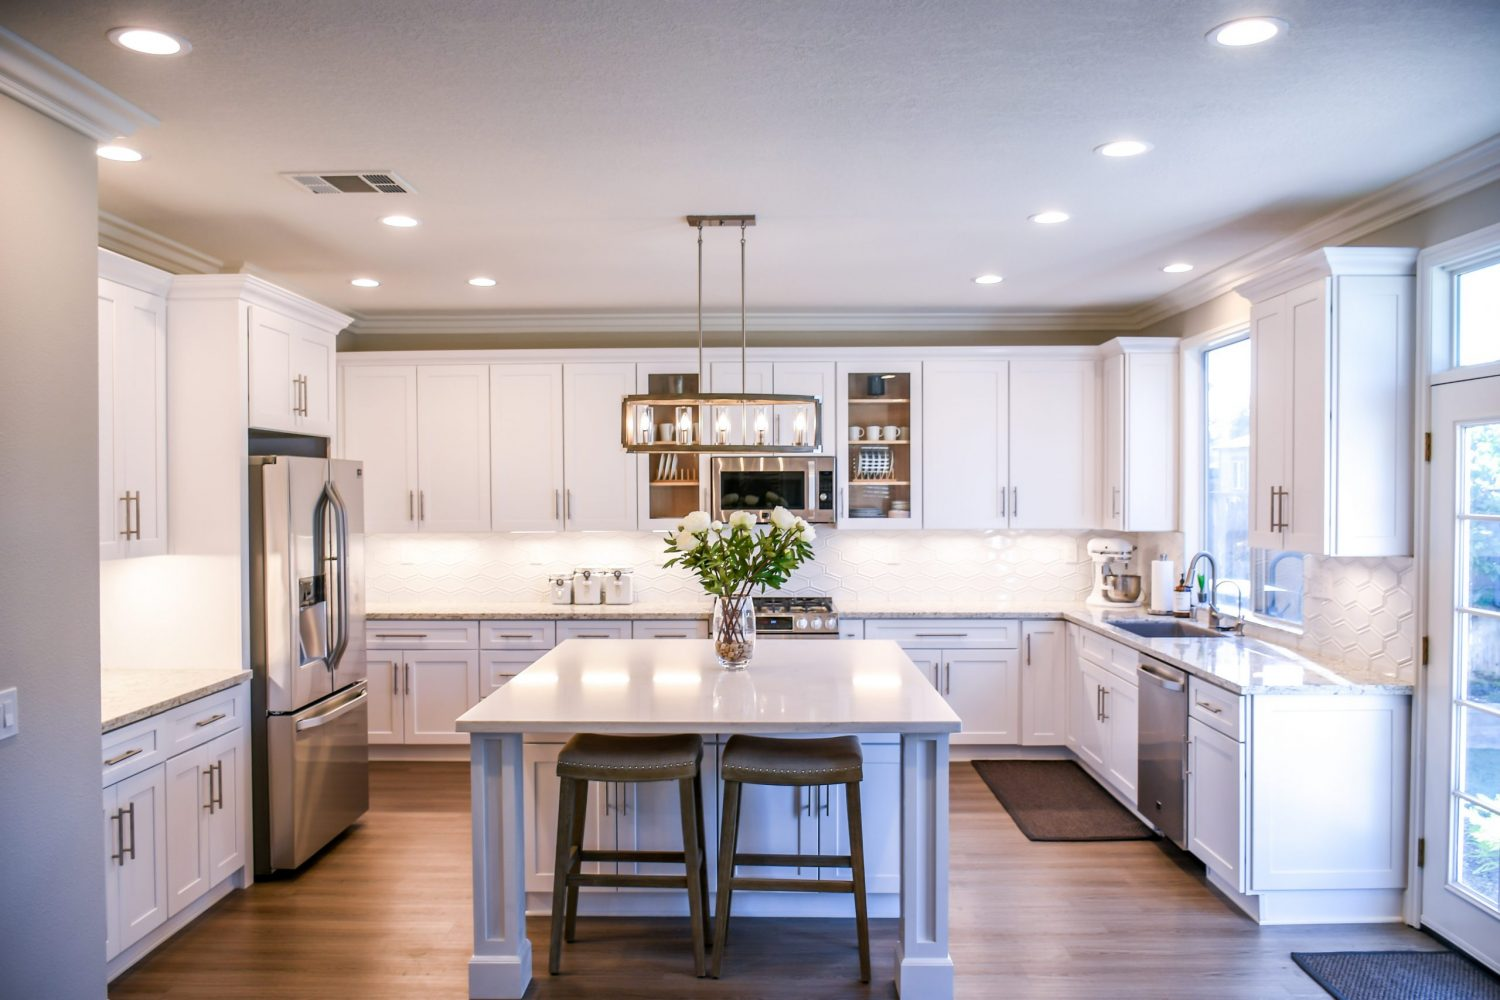 image of a spotless, de-cluttered kitchen